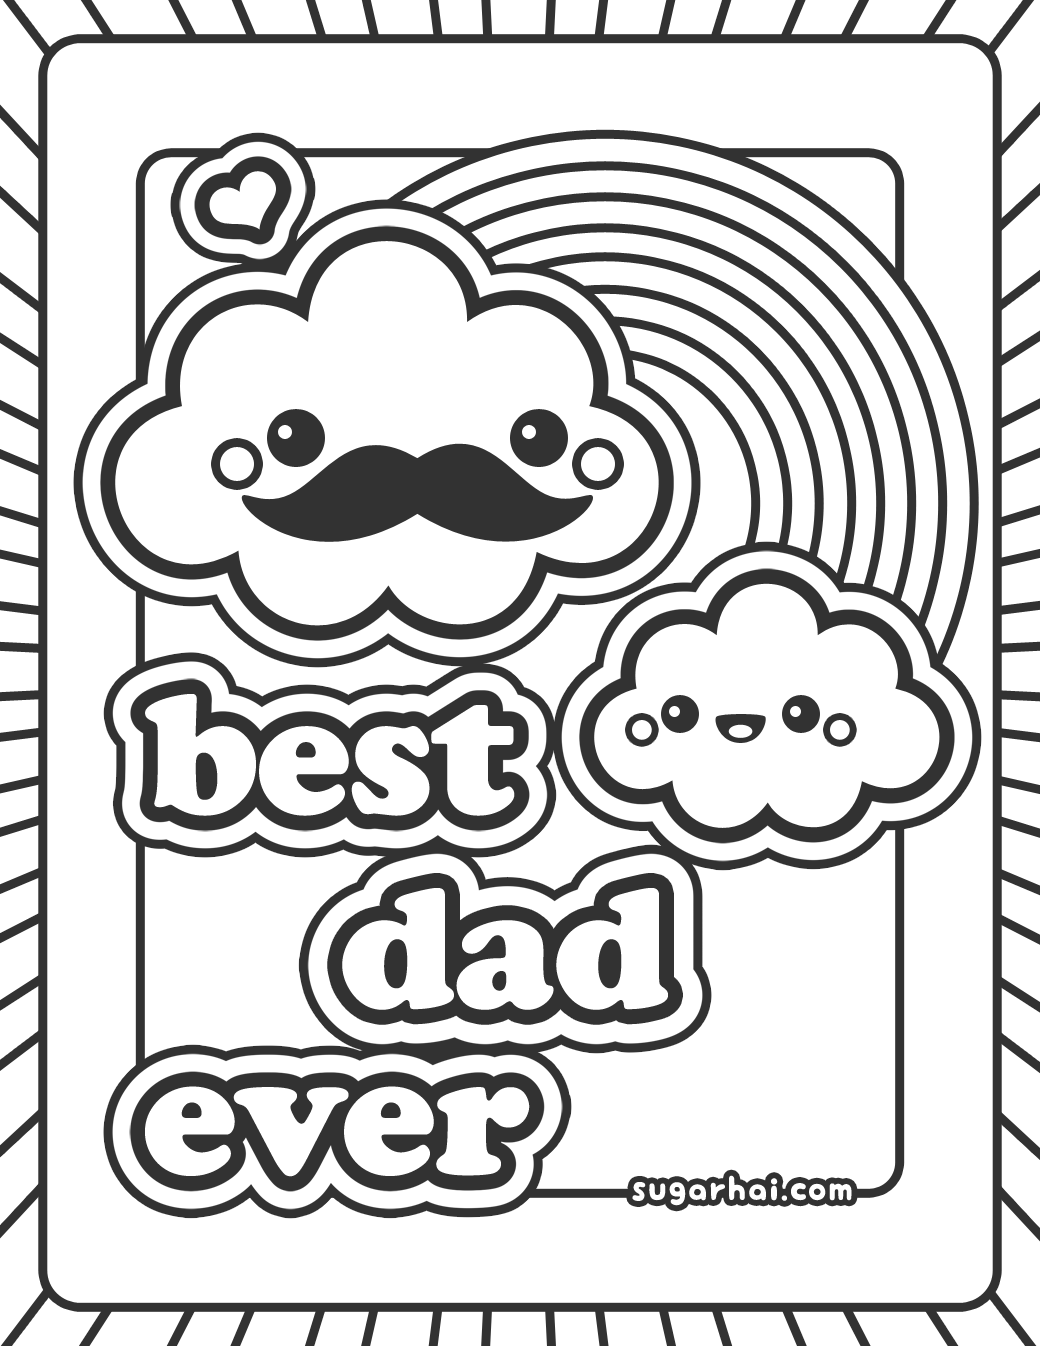 Free Best Dad Ever Coloring Page